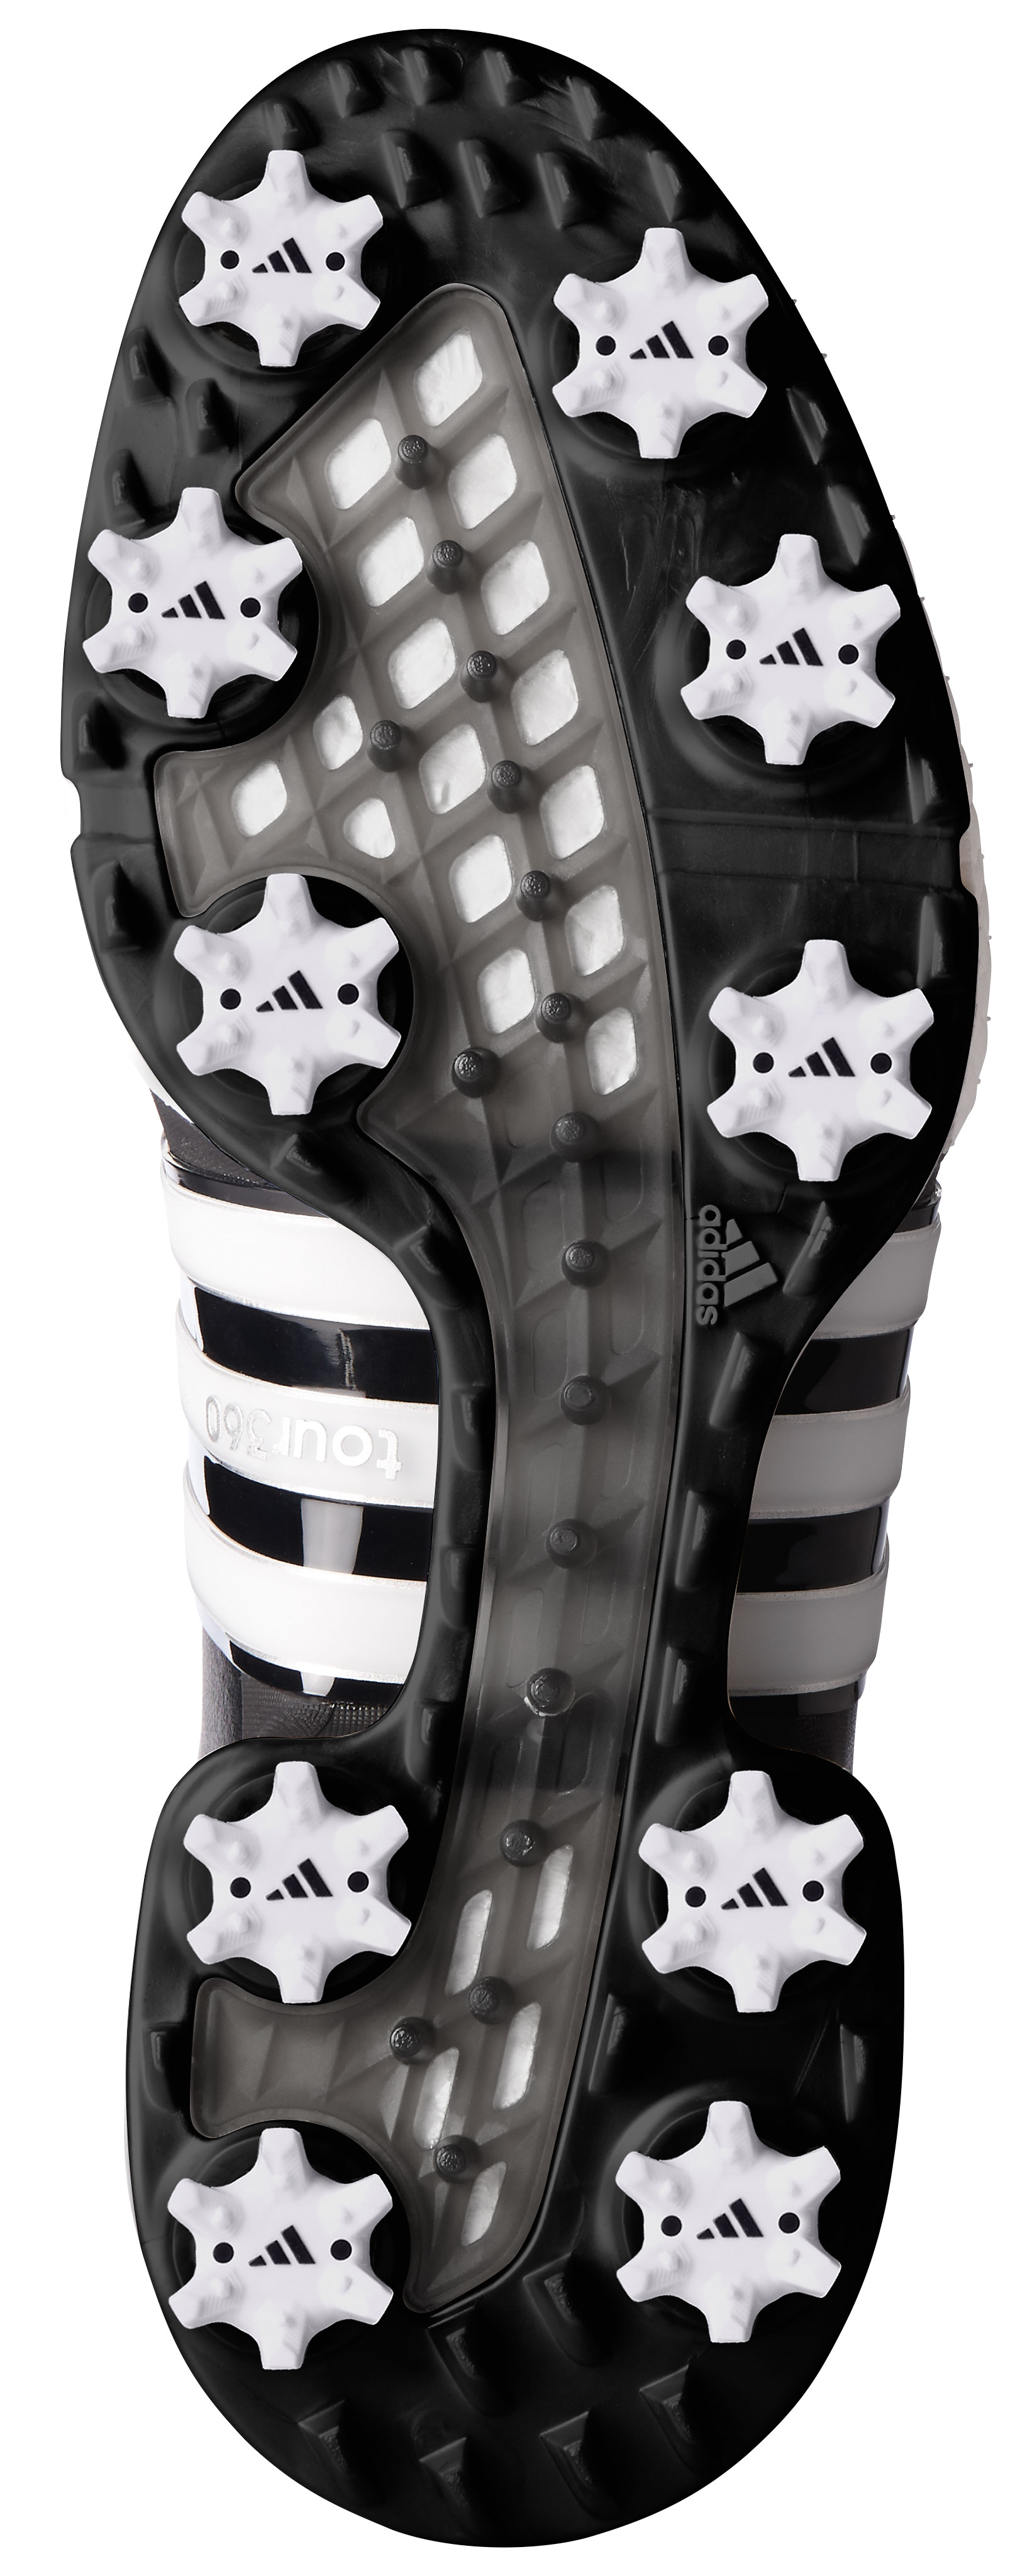 adidas boot shoes